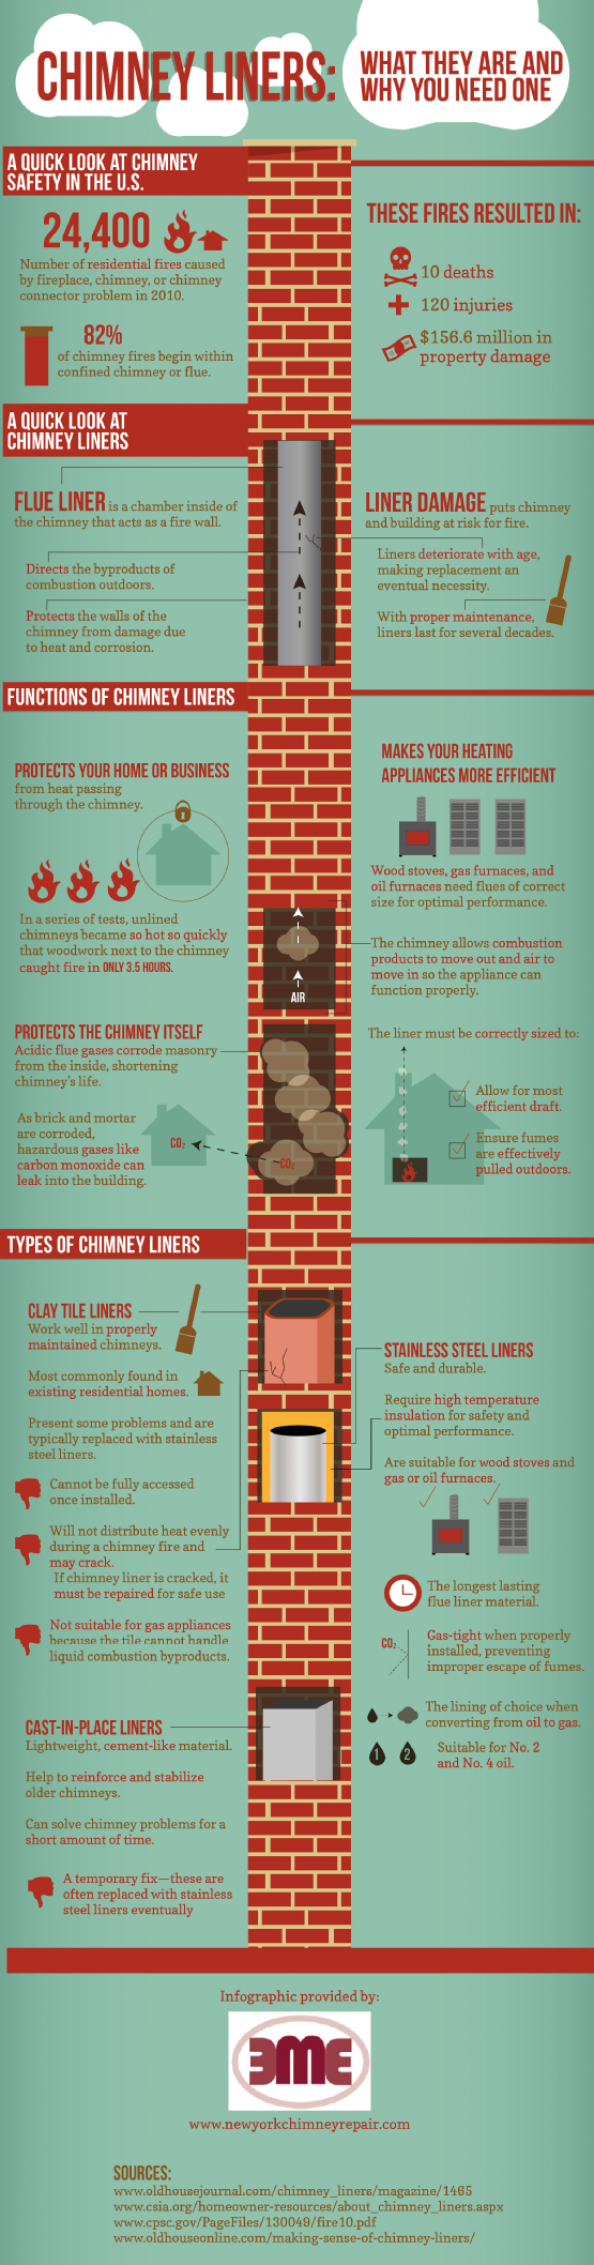 Chimney Liners: What They Are and Why You Need One Infographic